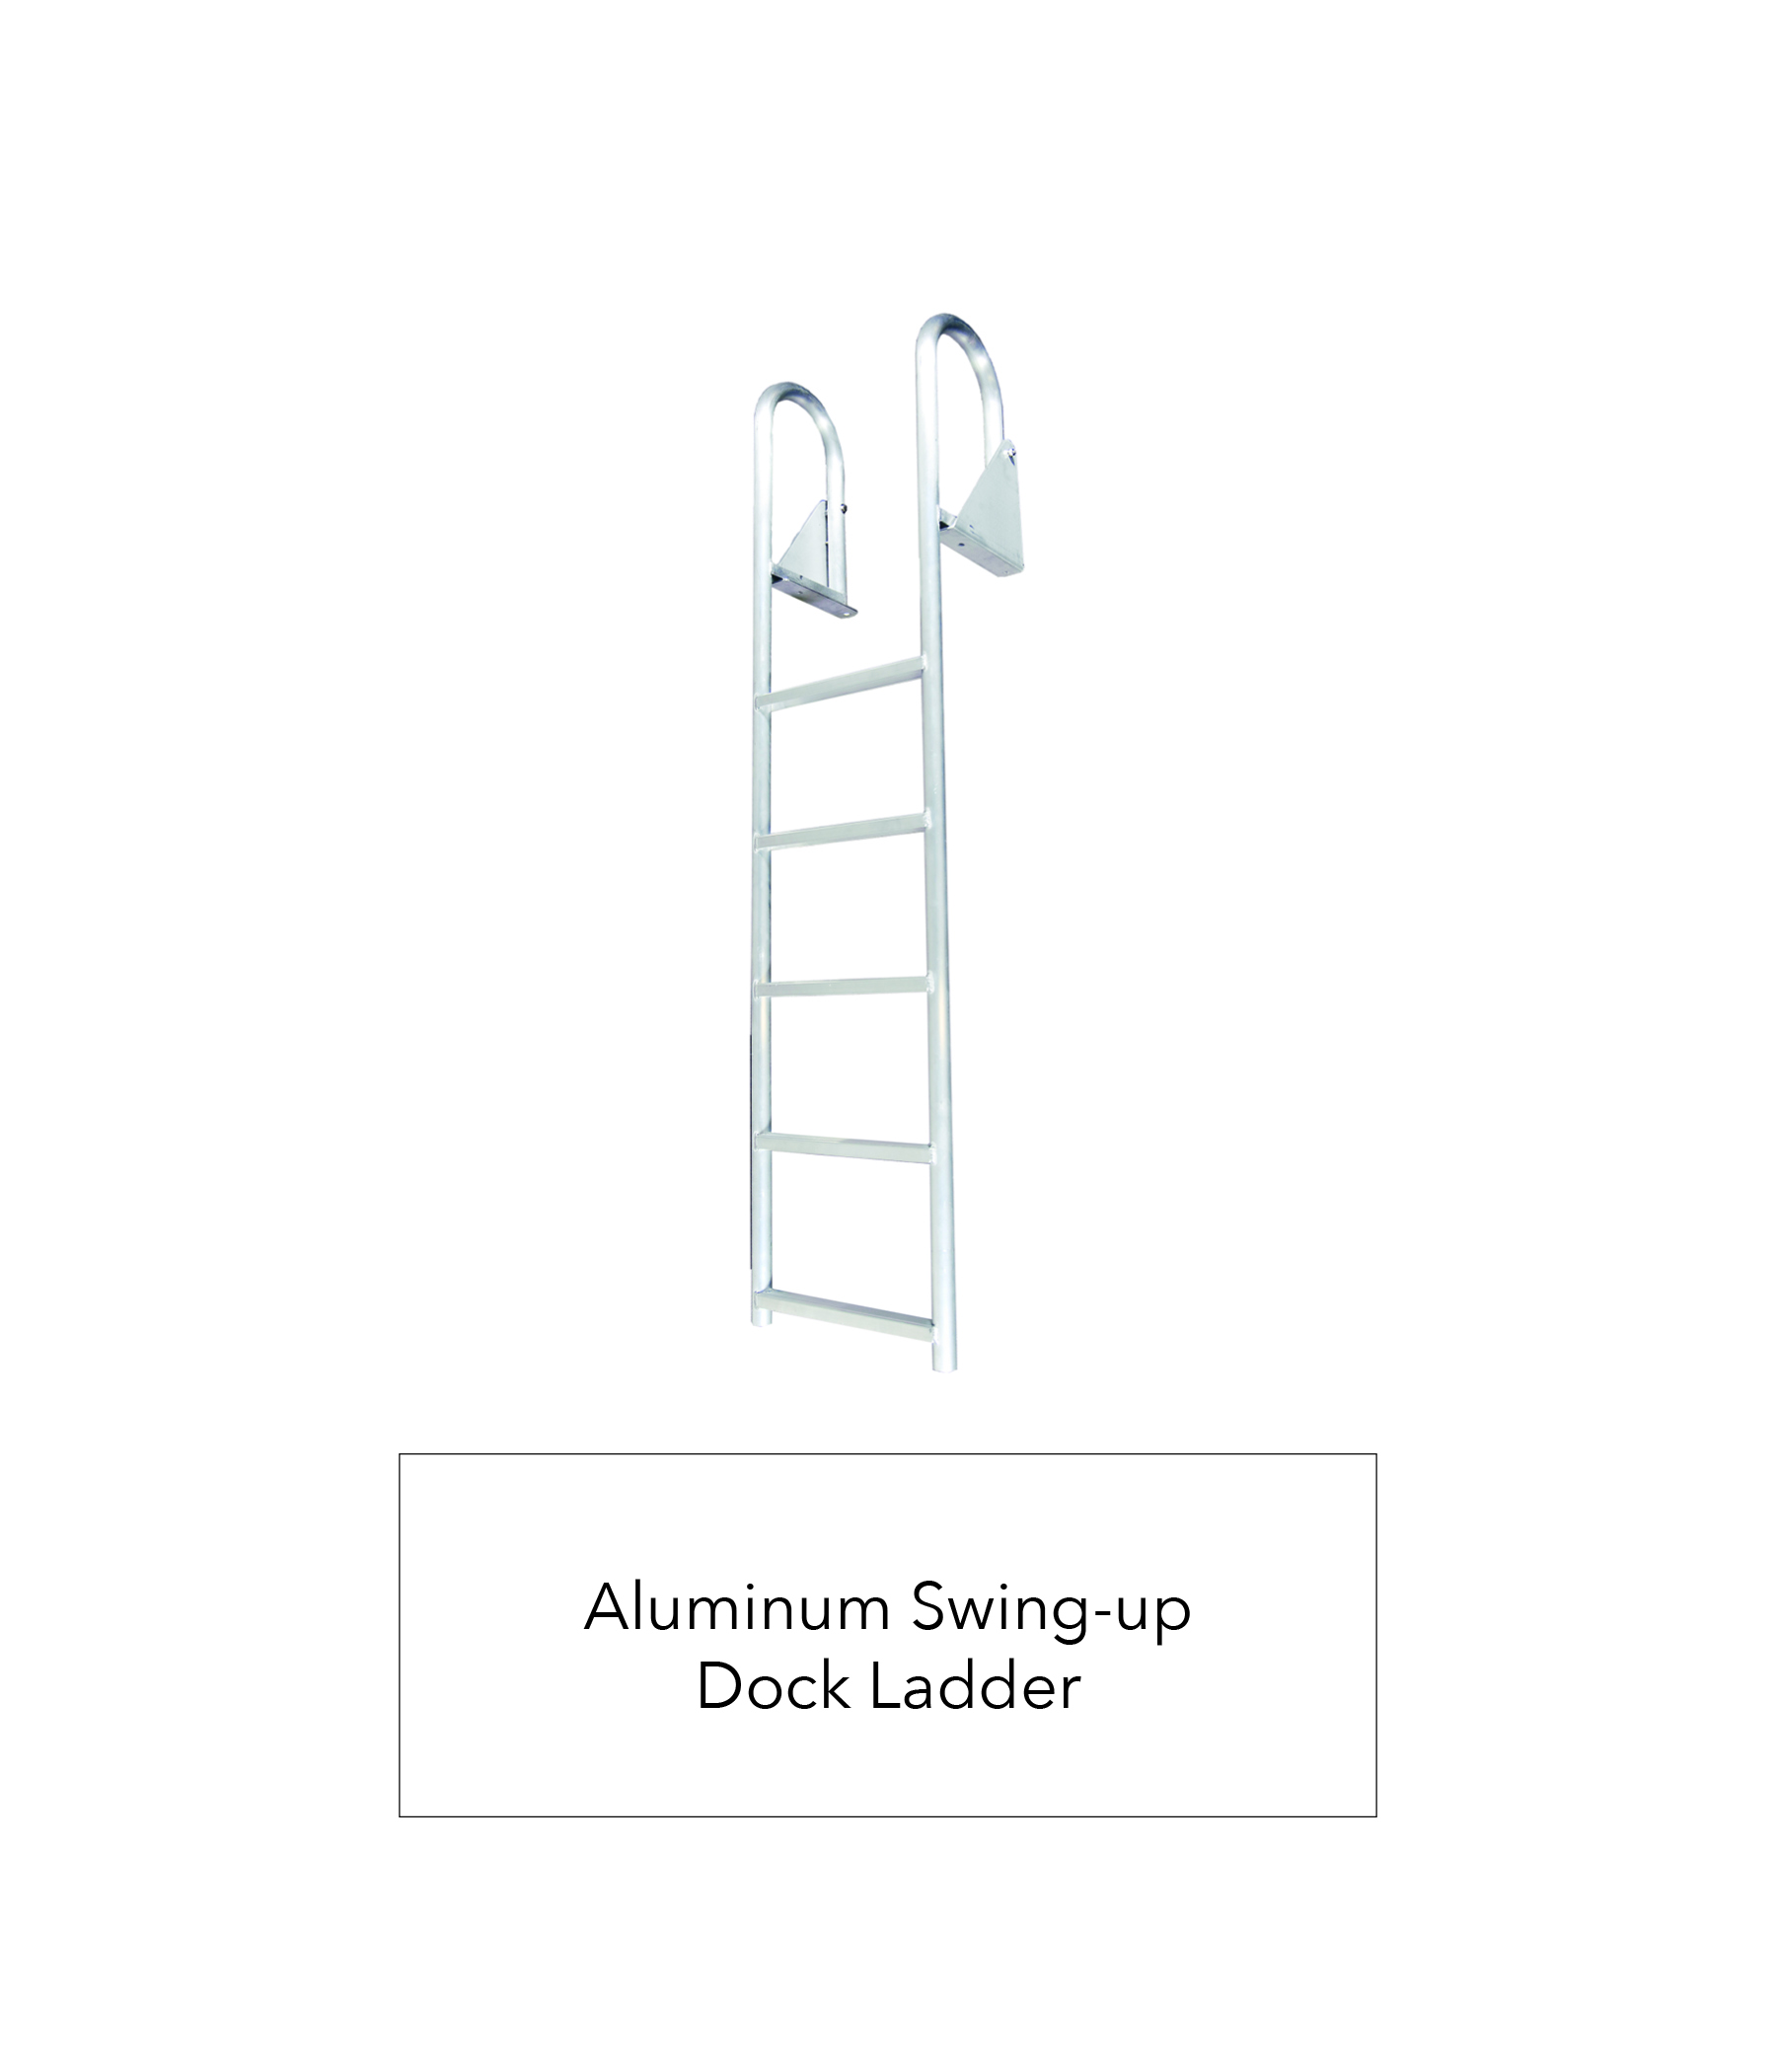 Aluminum Swing-up Dock Ladder — K & R Manufacturing